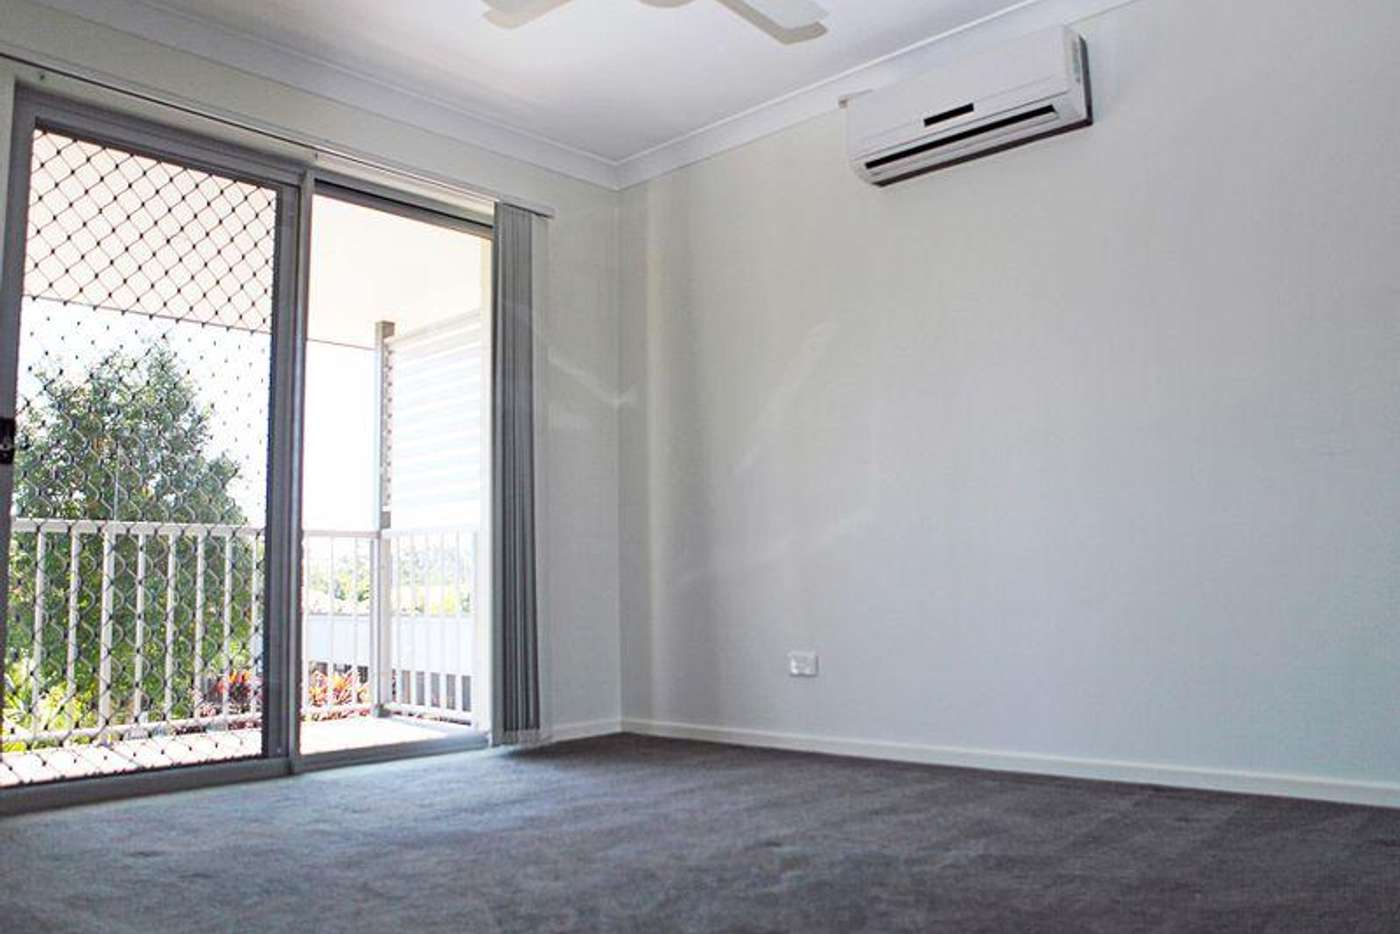 Sixth view of Homely townhouse listing, 2311 Logan Road, Eight Mile Plains QLD 4113